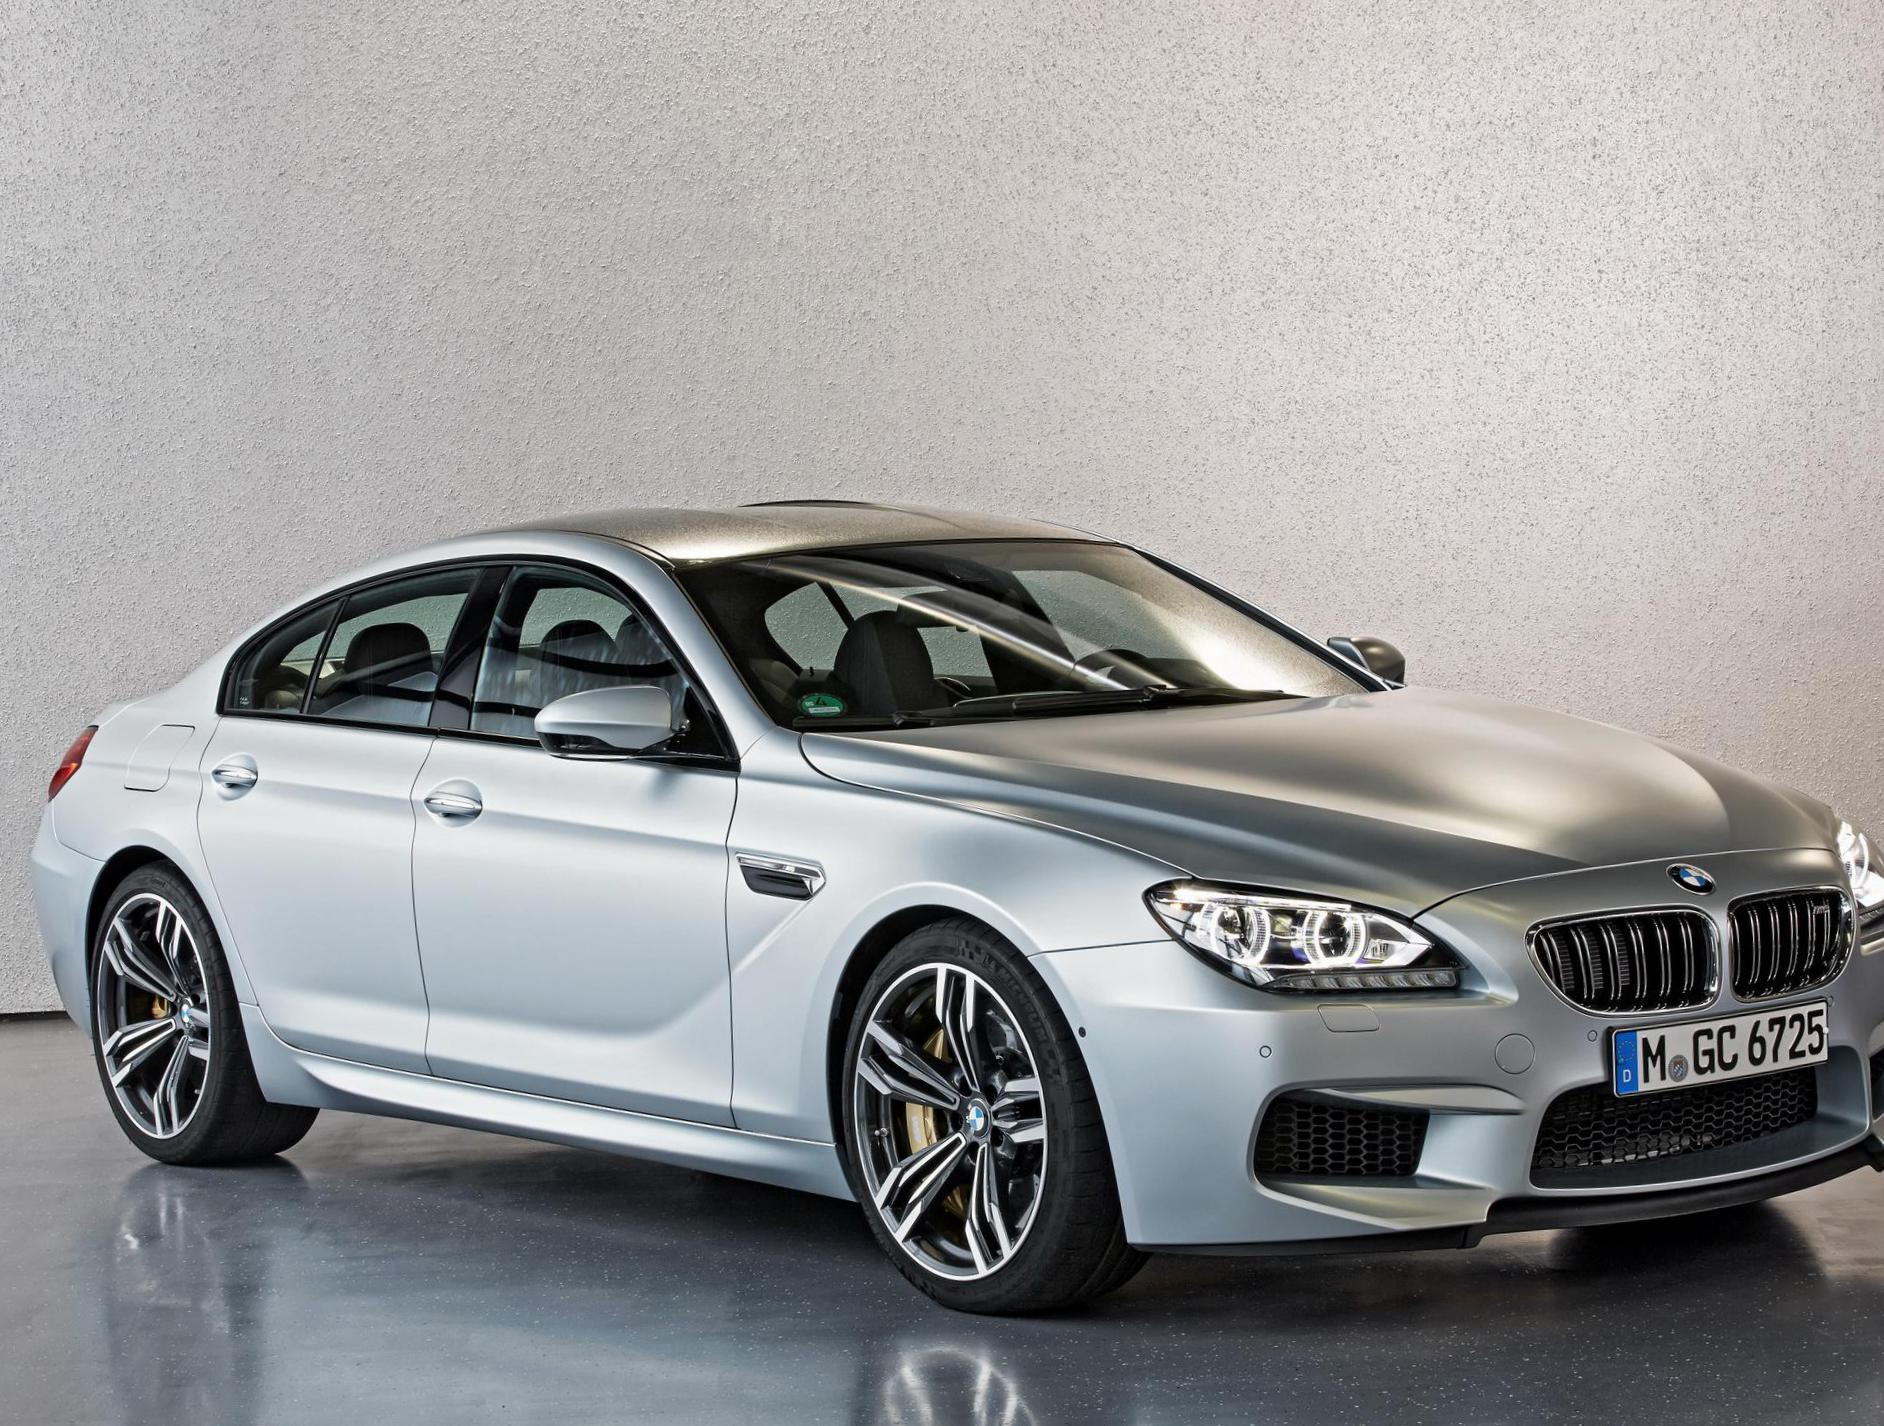 BMW M6 Gran Coupe (F06) usa 2015